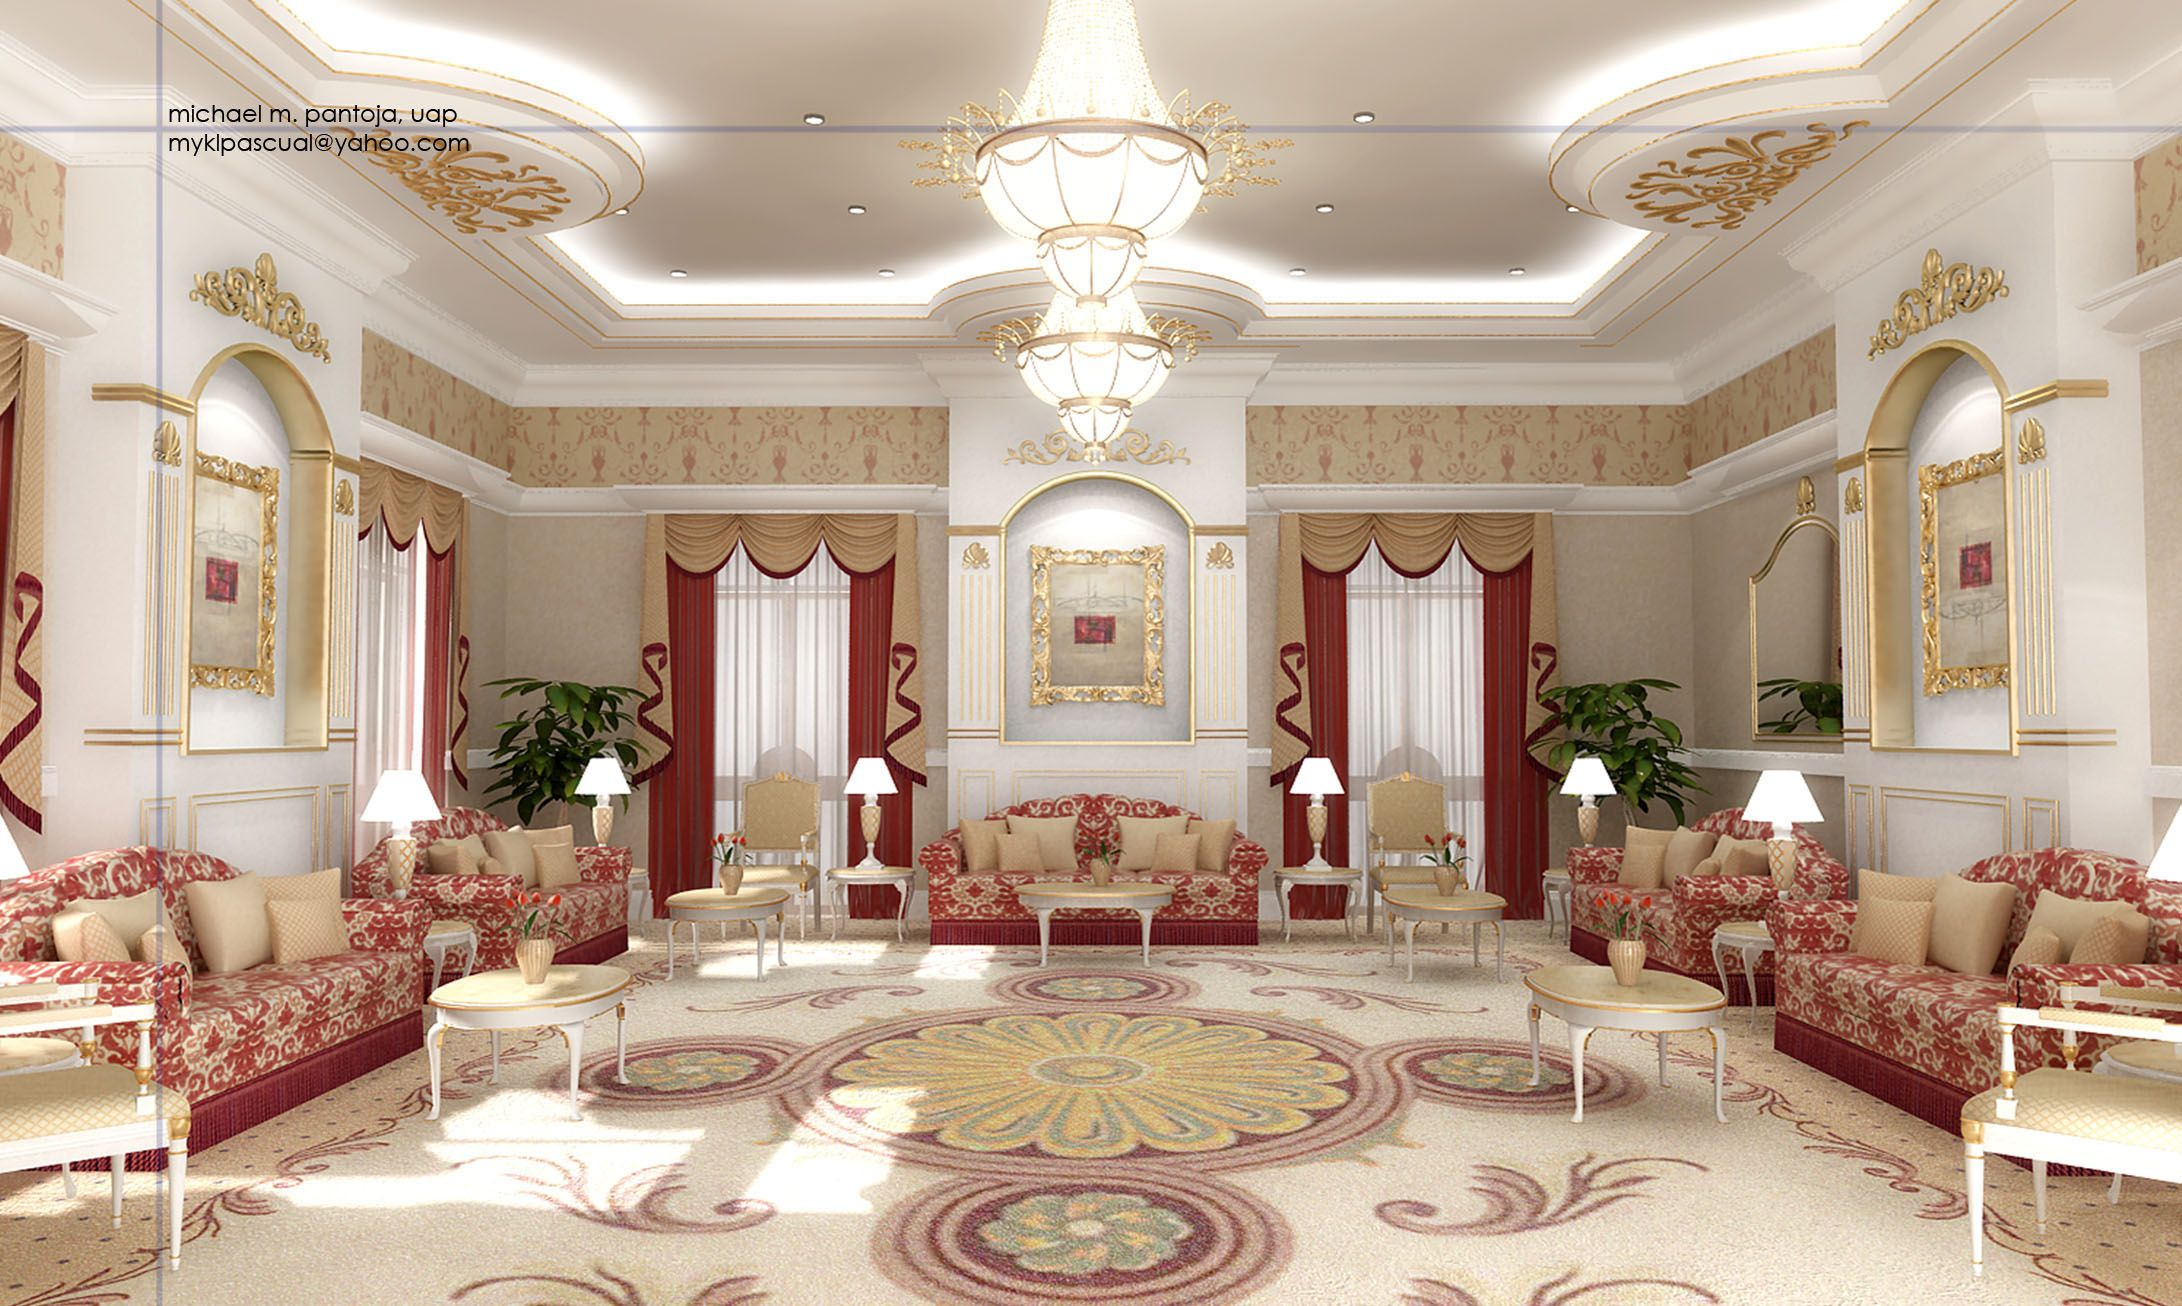 Arabic Majlis Interior Design Decoration Stunning Decorating Design